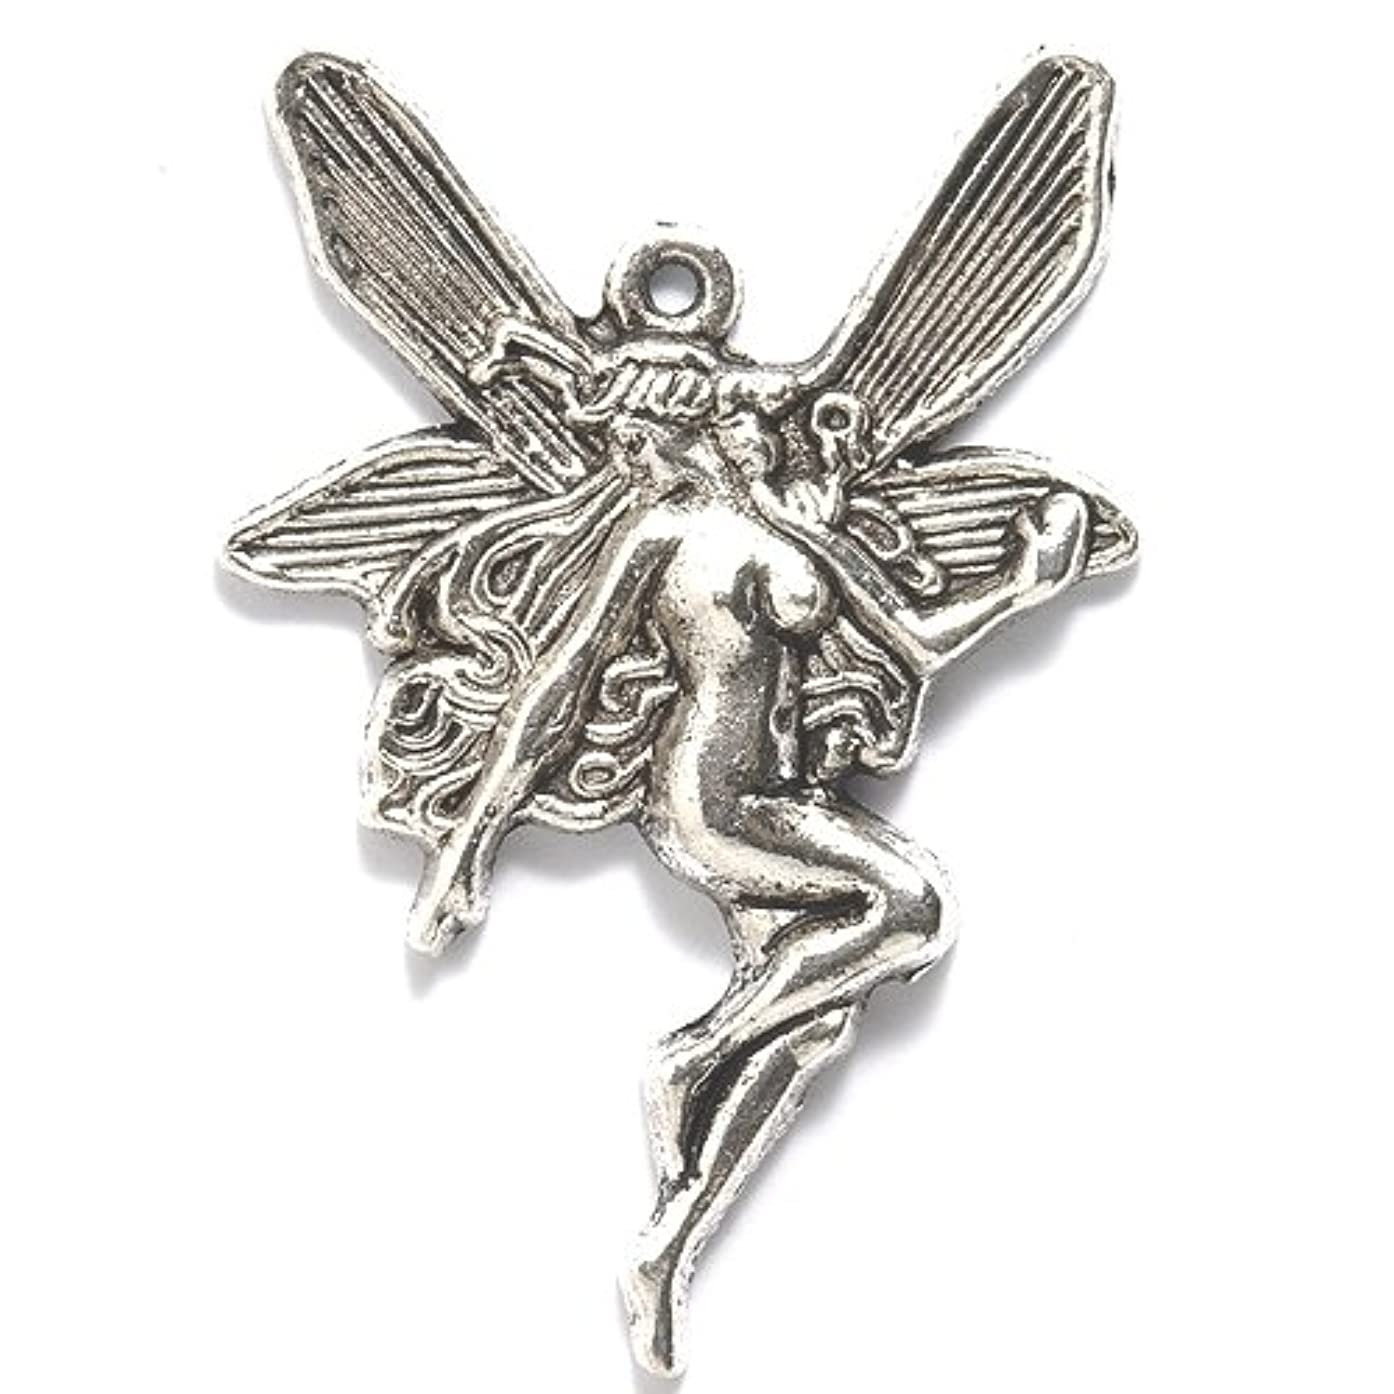 Shipwreck Beads Zinc Alloy Fairy with Long Hair Pendant, 30 by 44mm, Silver, 16-Pack